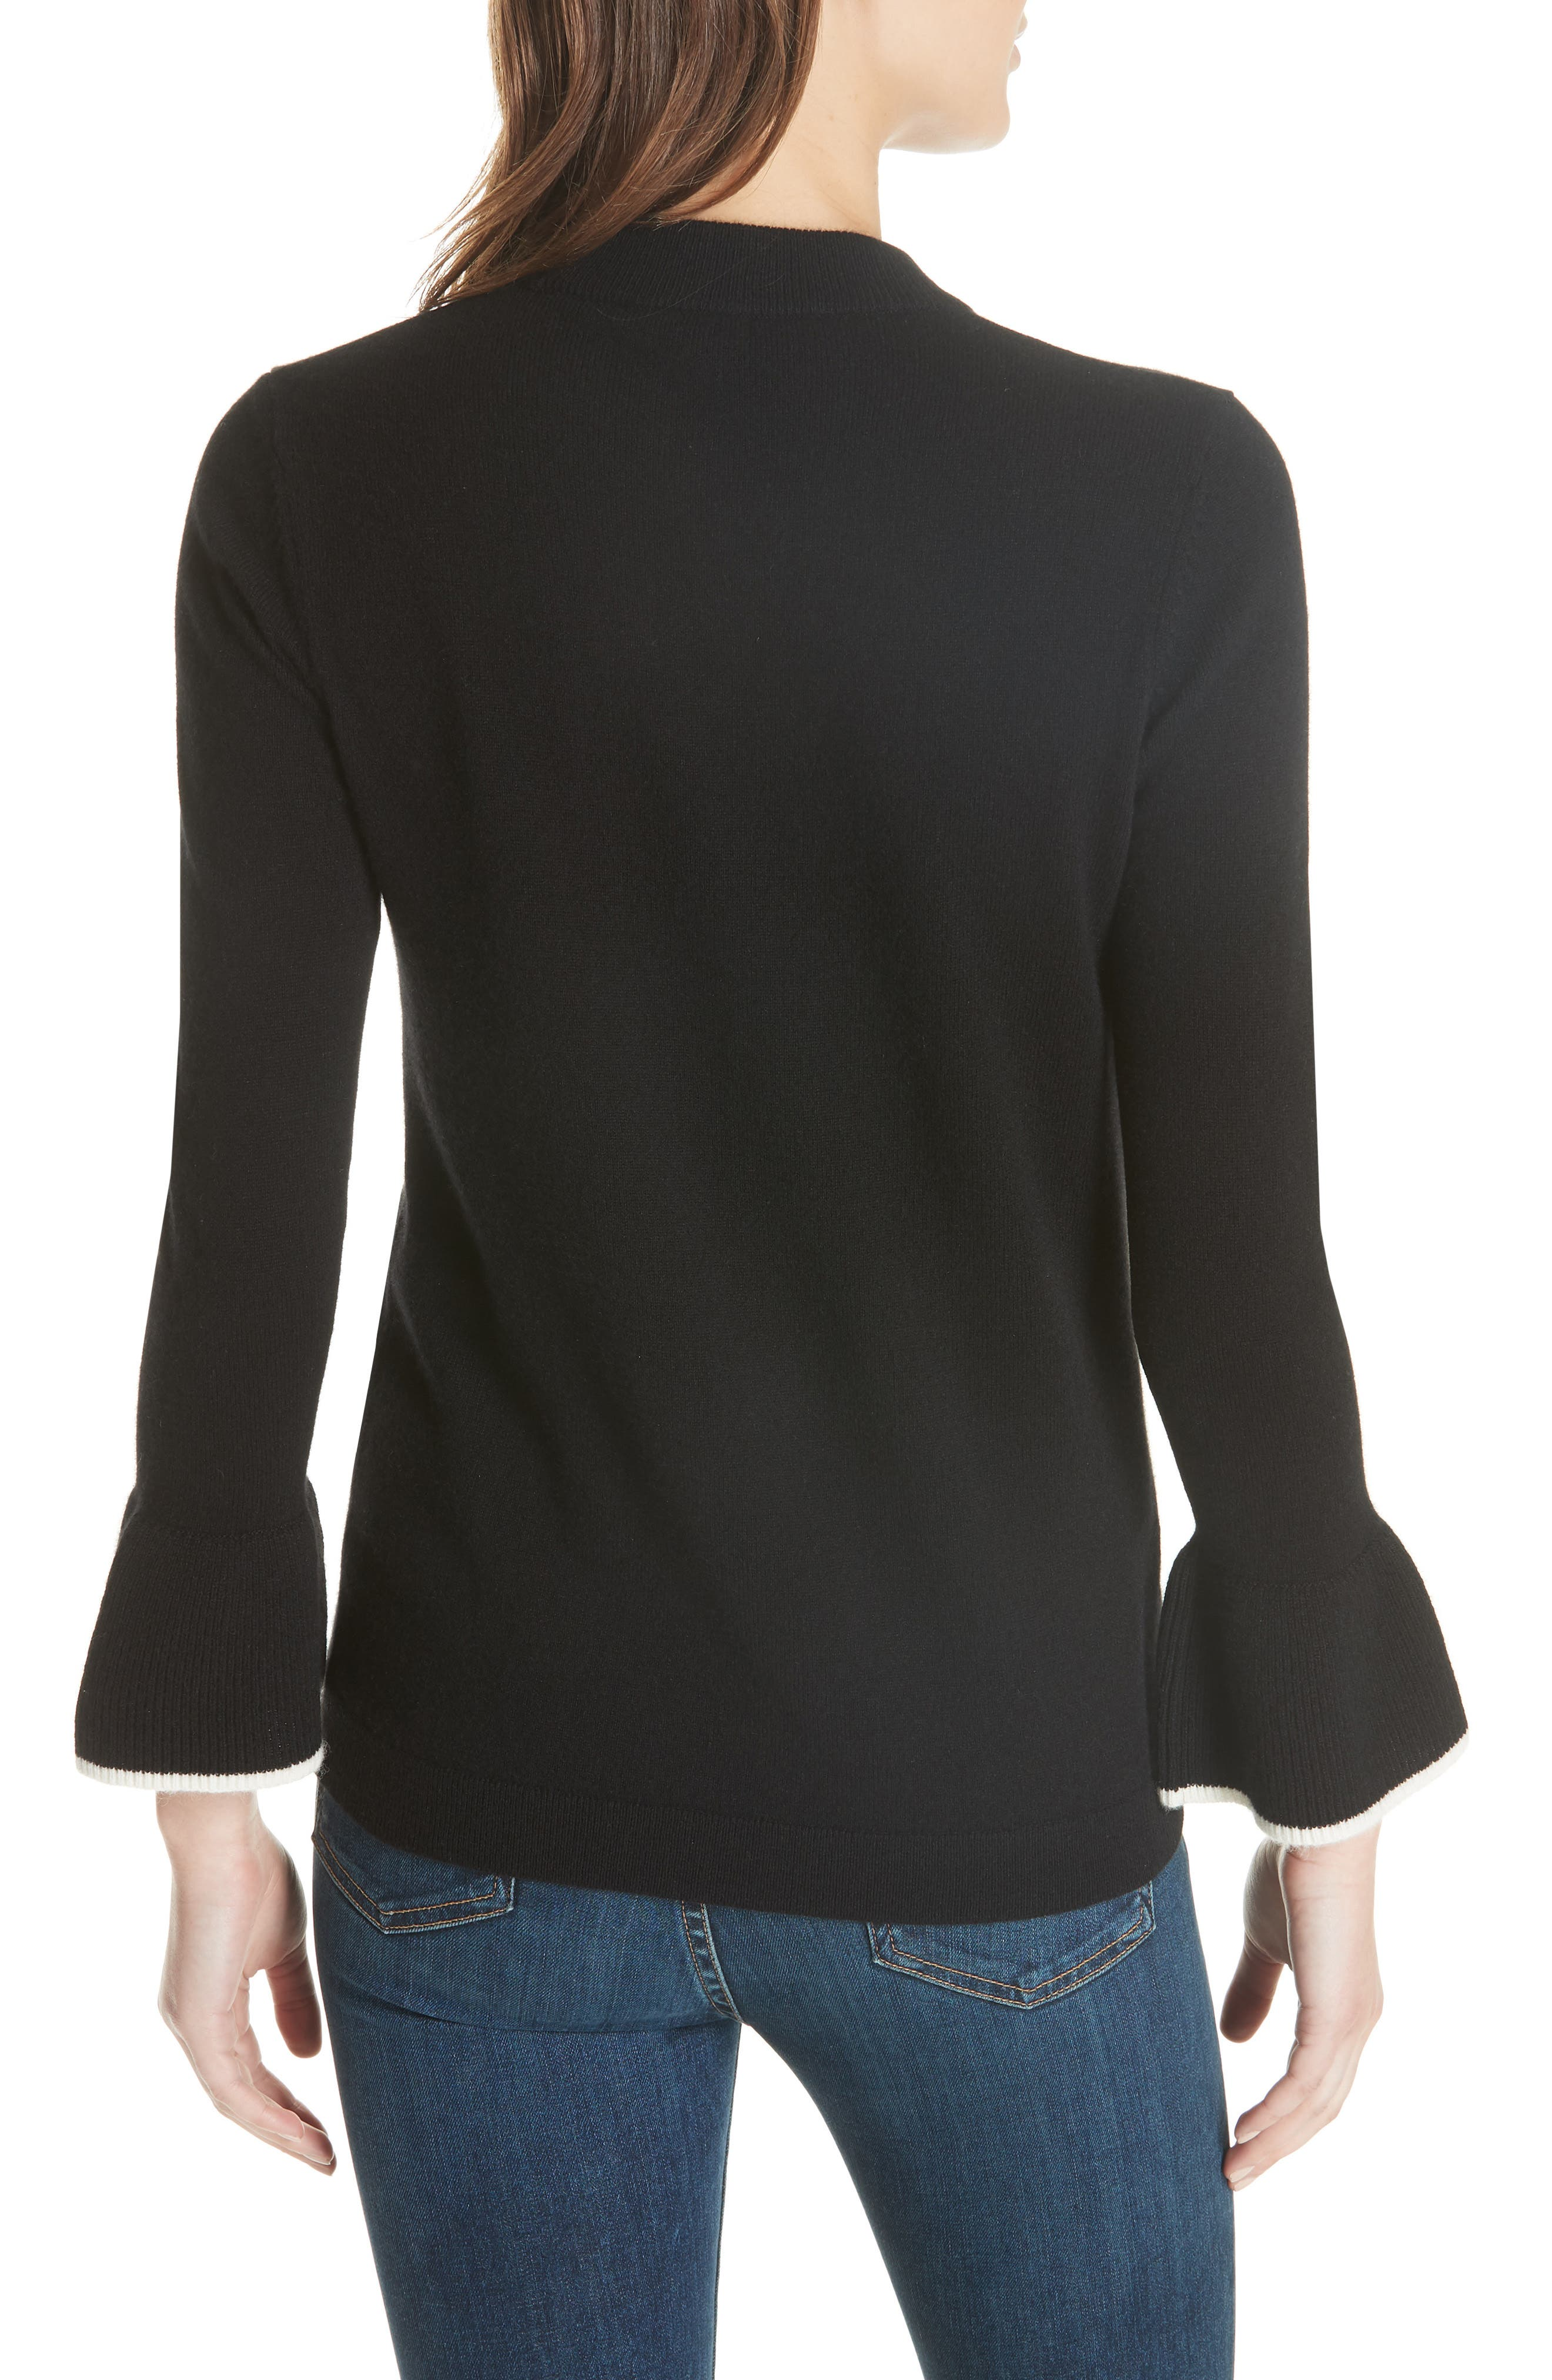 Mar Cashmere Sweater,                             Alternate thumbnail 2, color,                             001